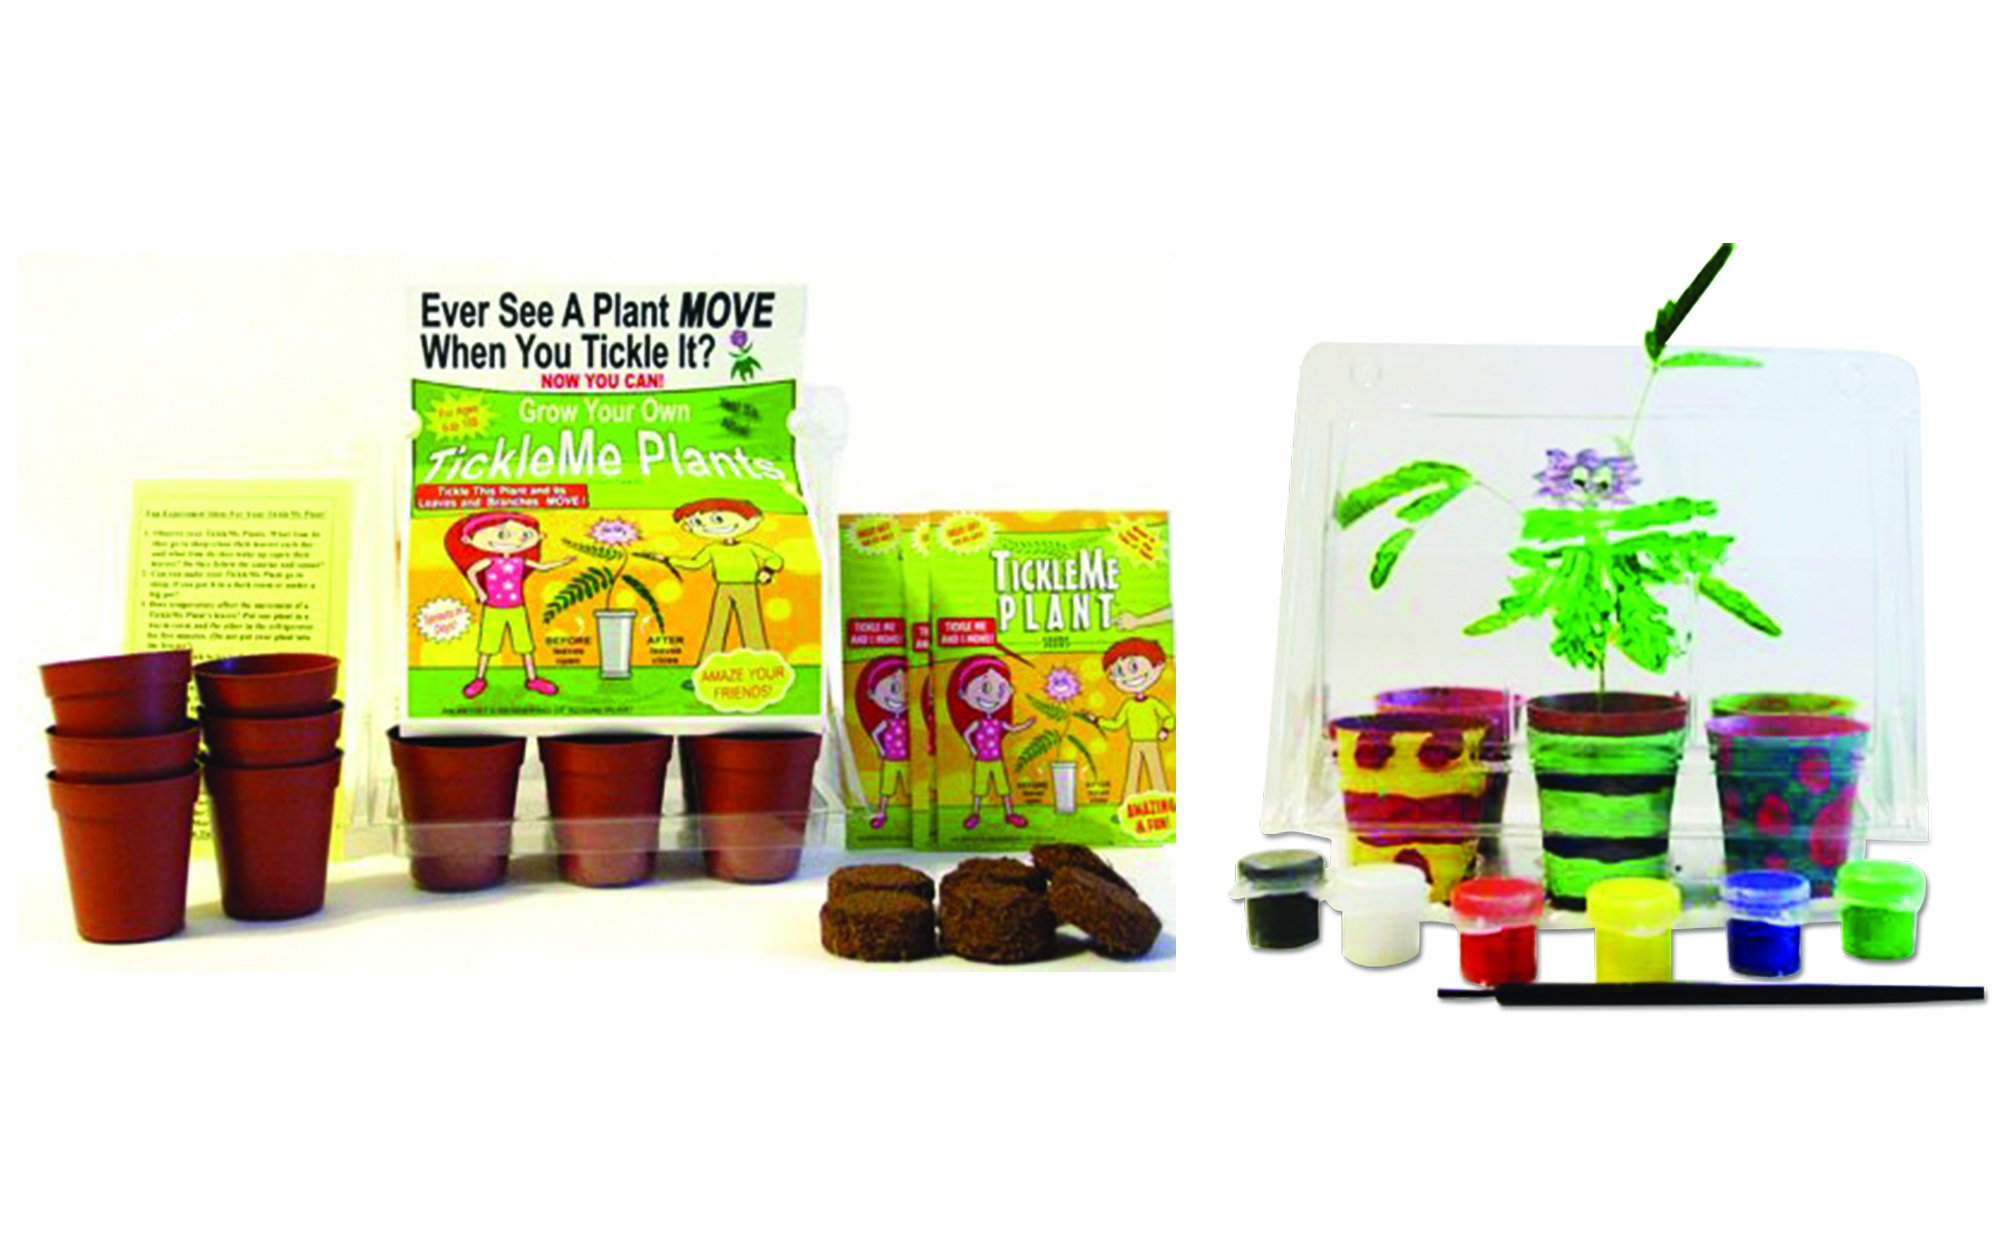 TickleMe Plant Deluxe Greenhouse Kit with 6 Color Paint Set for Kids with 10 Fun Activities. Grow The House Plant That Closes its Leaves & Lowers it Branches When Tickled. Great Science Activity by TickleMe Plant